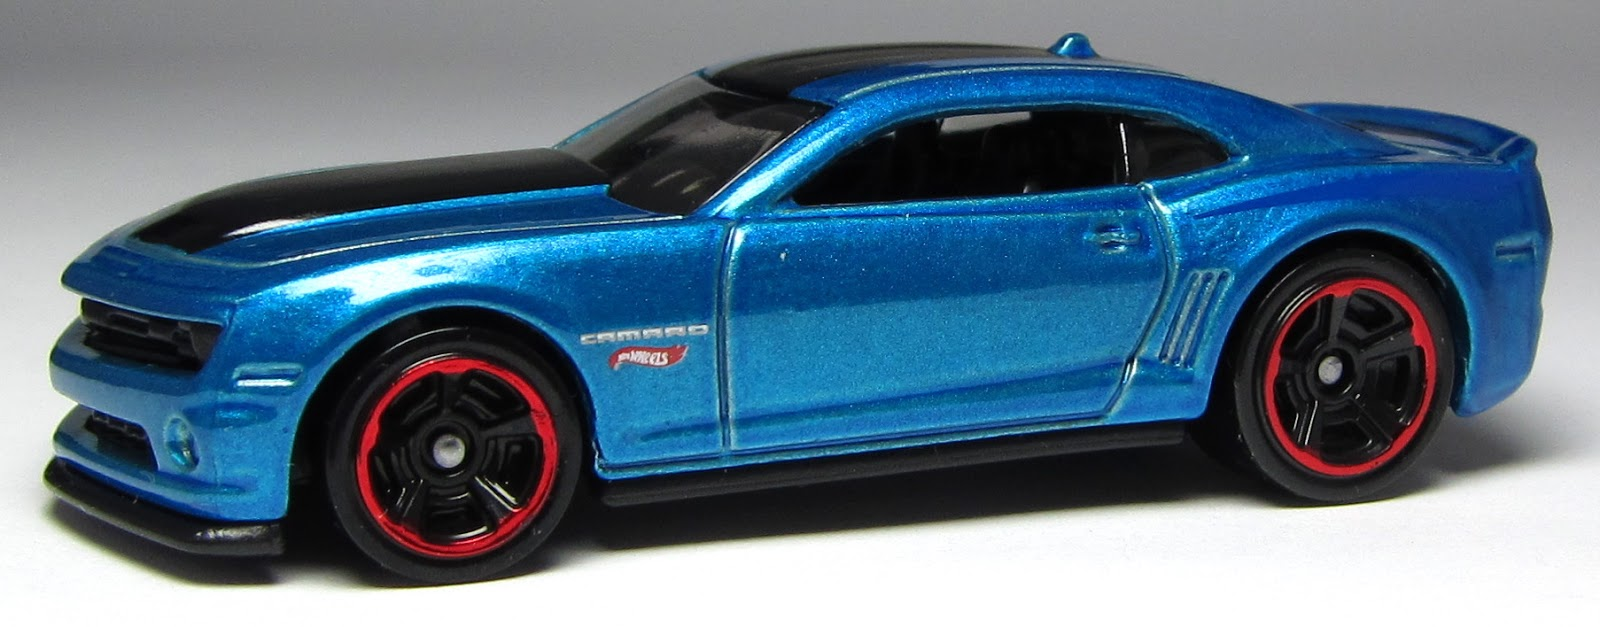 First Look: 2013 Hot Wheels Special Edition Chevy Camaro (and a few ...